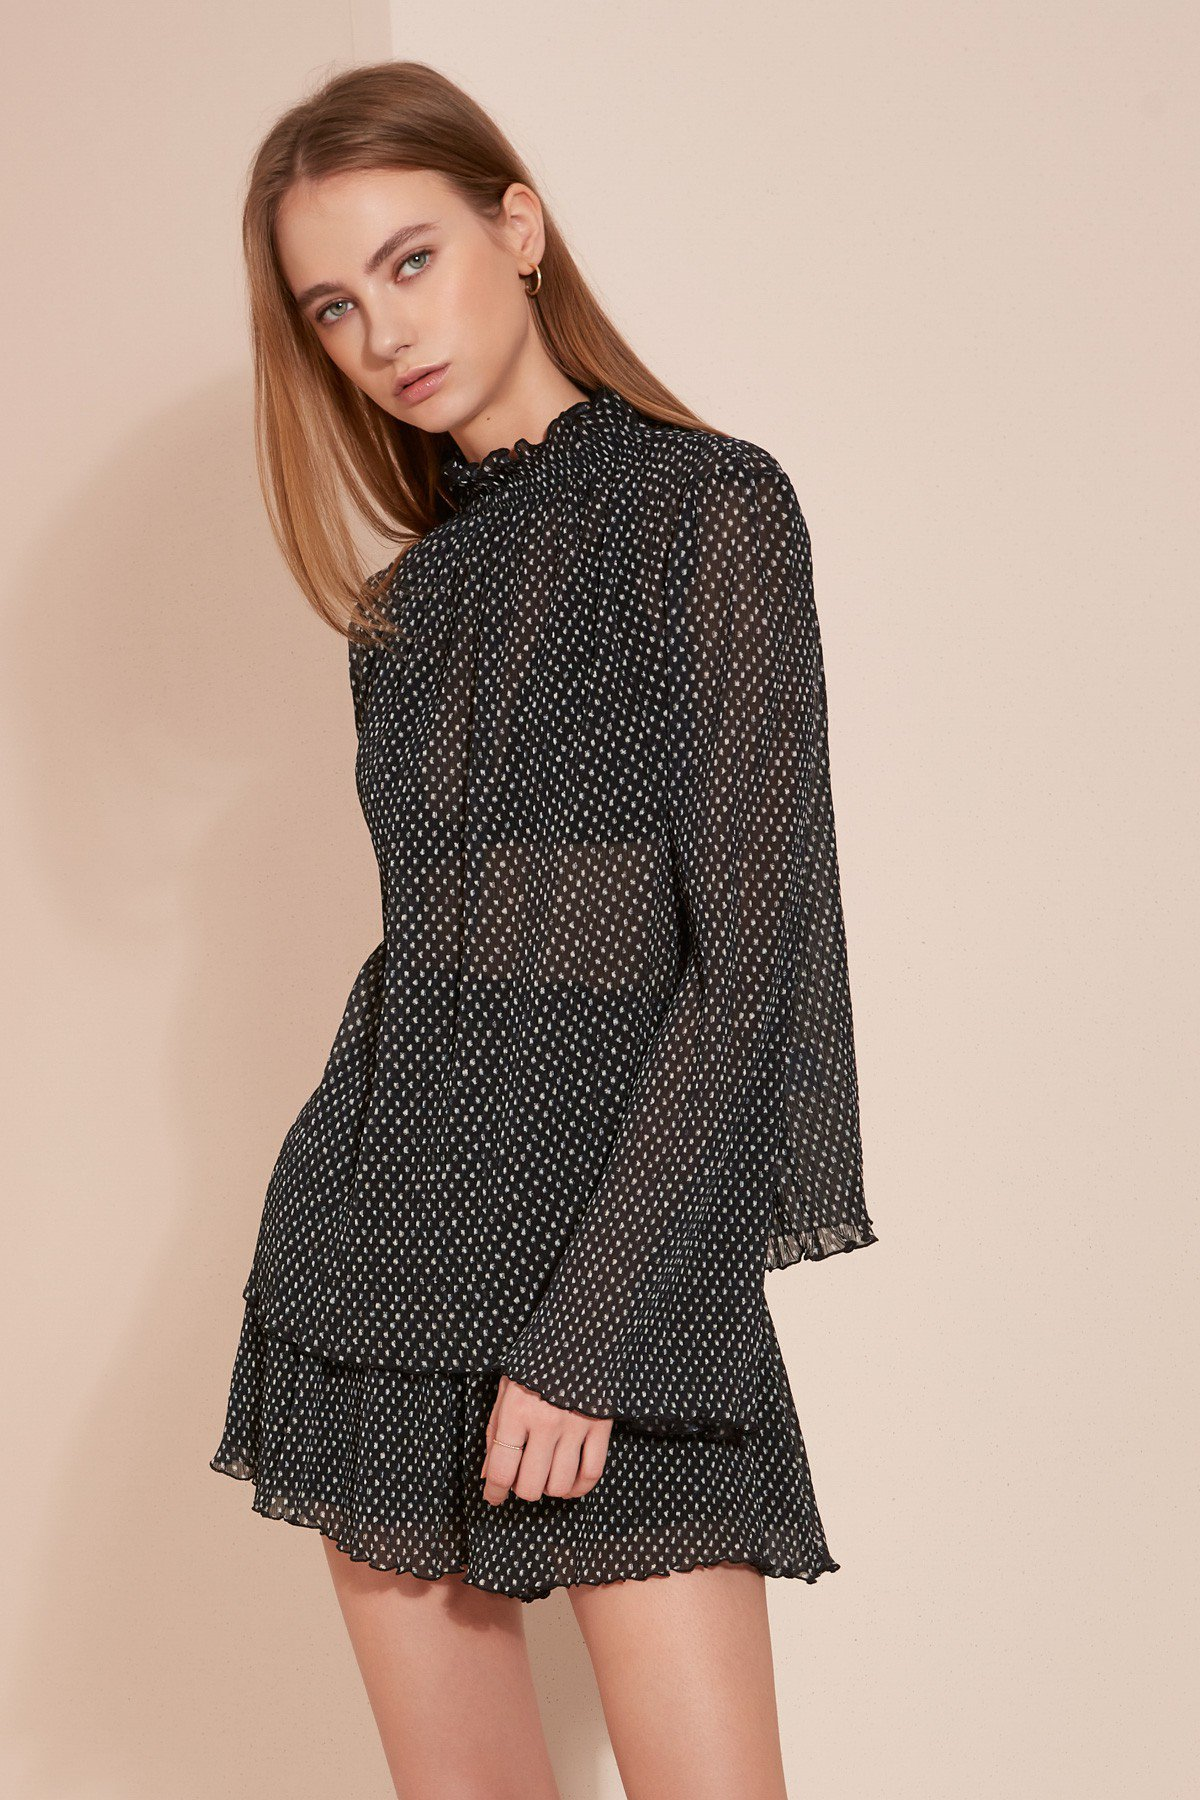 Shop  The Fifth Night Vision L/S Top  +  Short .